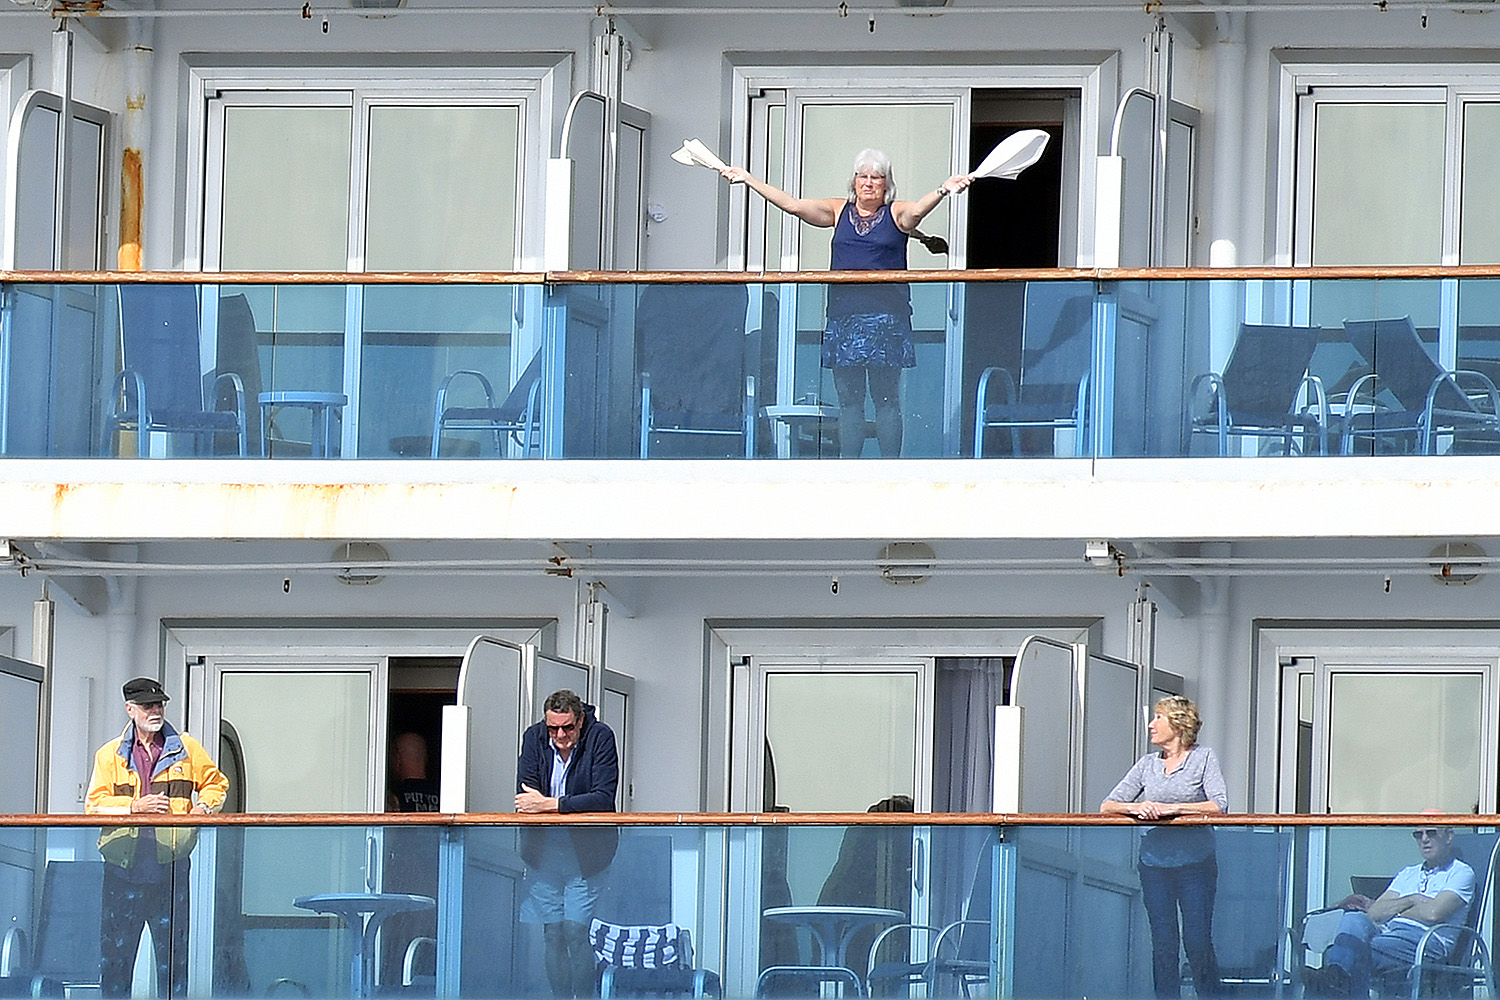 A woman gestures from aboard the coronavirus-stricken Grand Princess cruise ship as it maintains a holding pattern about 25 miles off the coast of San Francisco on March 8. On March 11, the World Health Organization declared the COVID-19 outbreak a pandemic. JOSH EDELSON/AFP via Getty Images